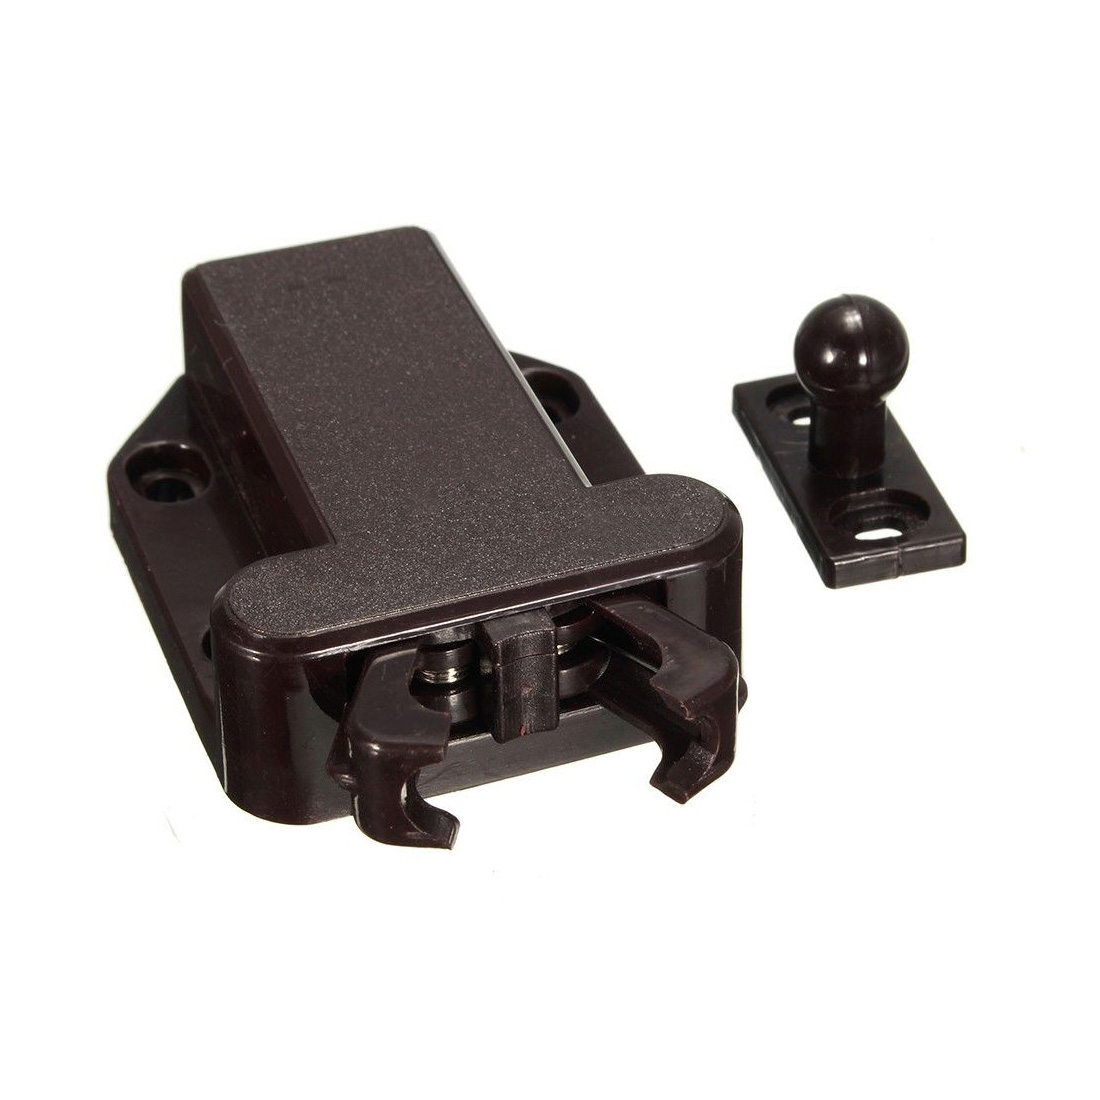 2X Push To Open Beetles Drawer Cabinet Latch Catch Touch Release Cupboard Brown push to open beetles drawer cabinet latch catch touch release kitchen cupboard new arrival high quality